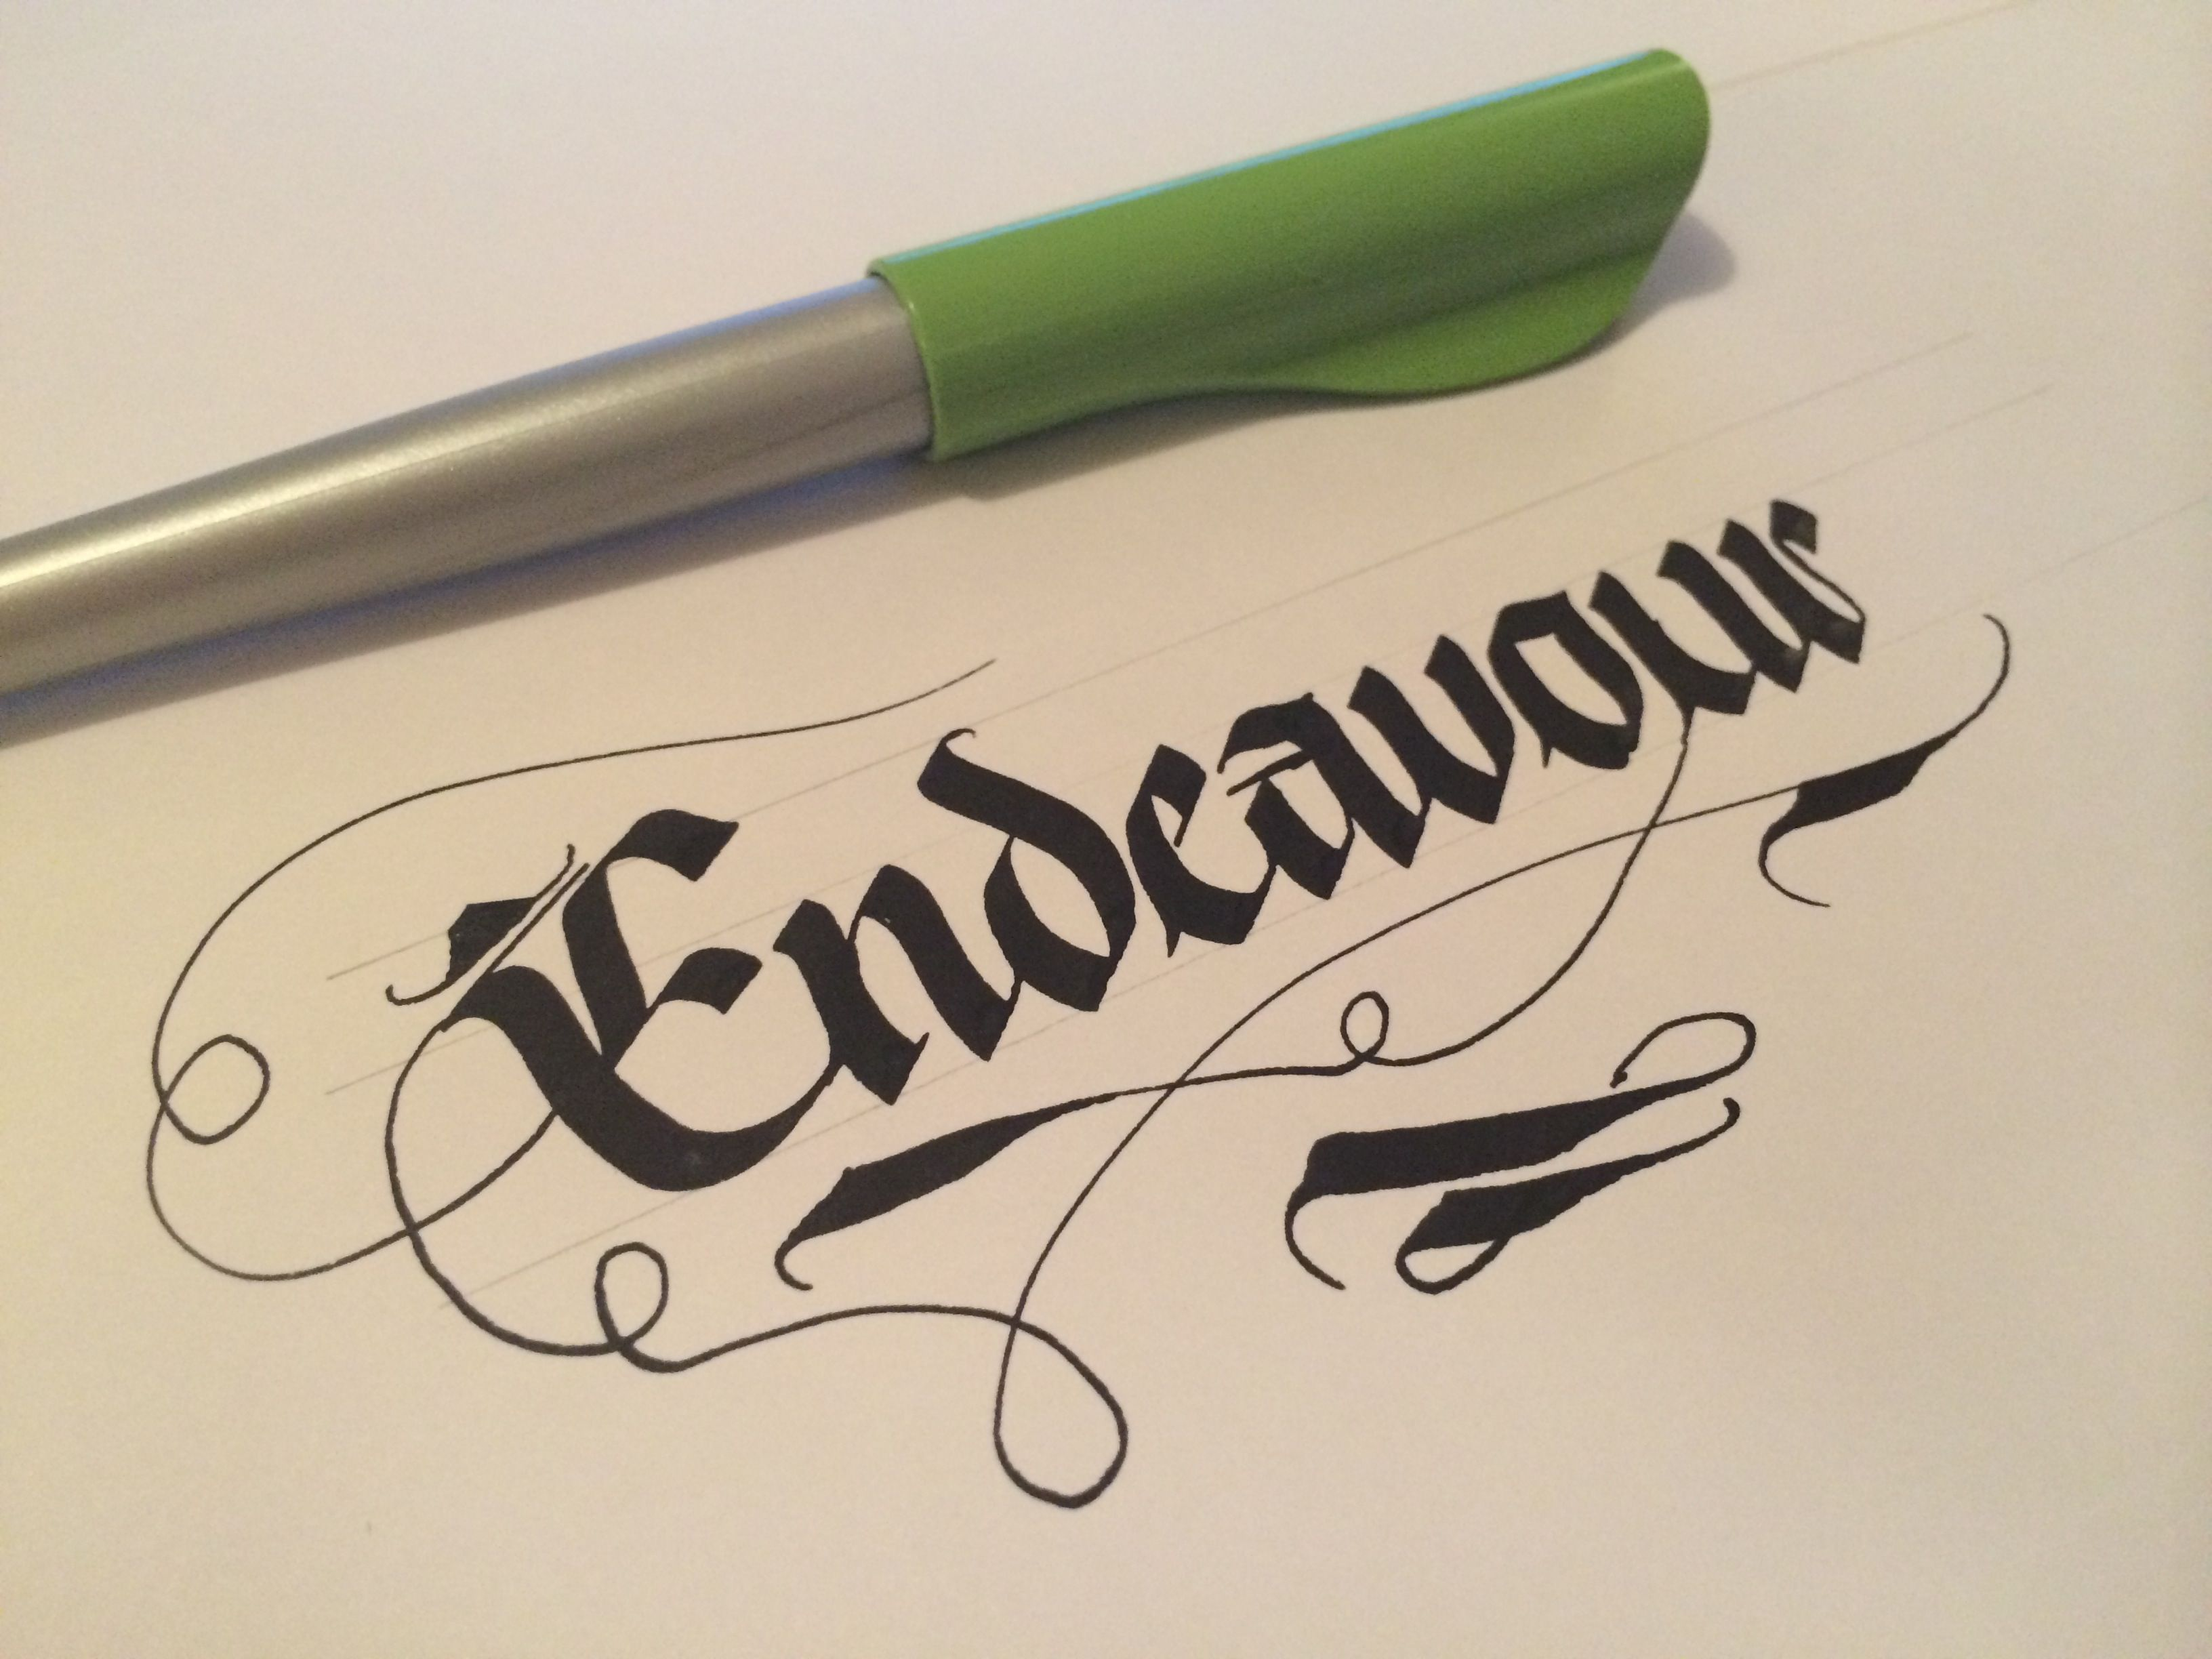 Such an important word, and so easy to mis-spell! #makedaily #calligraphy #fraktur #handlettering #customlettering